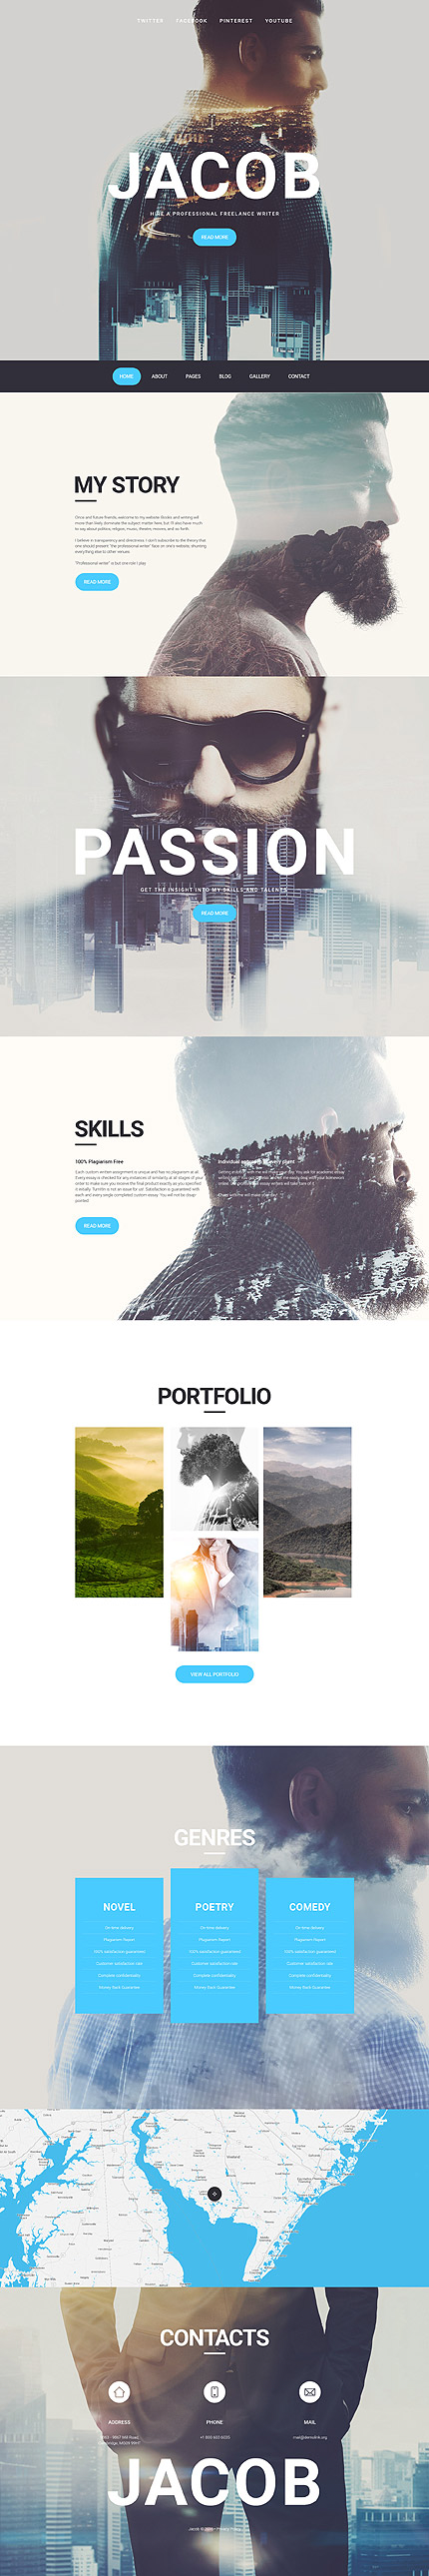 Art & Photography Most Popular website inspirations at your coffee break? Browse for more Joomla #templates! // Regular price: $75 // Sources available: .PSD, .PHP #Art & Photography #Most Popular #Joomla